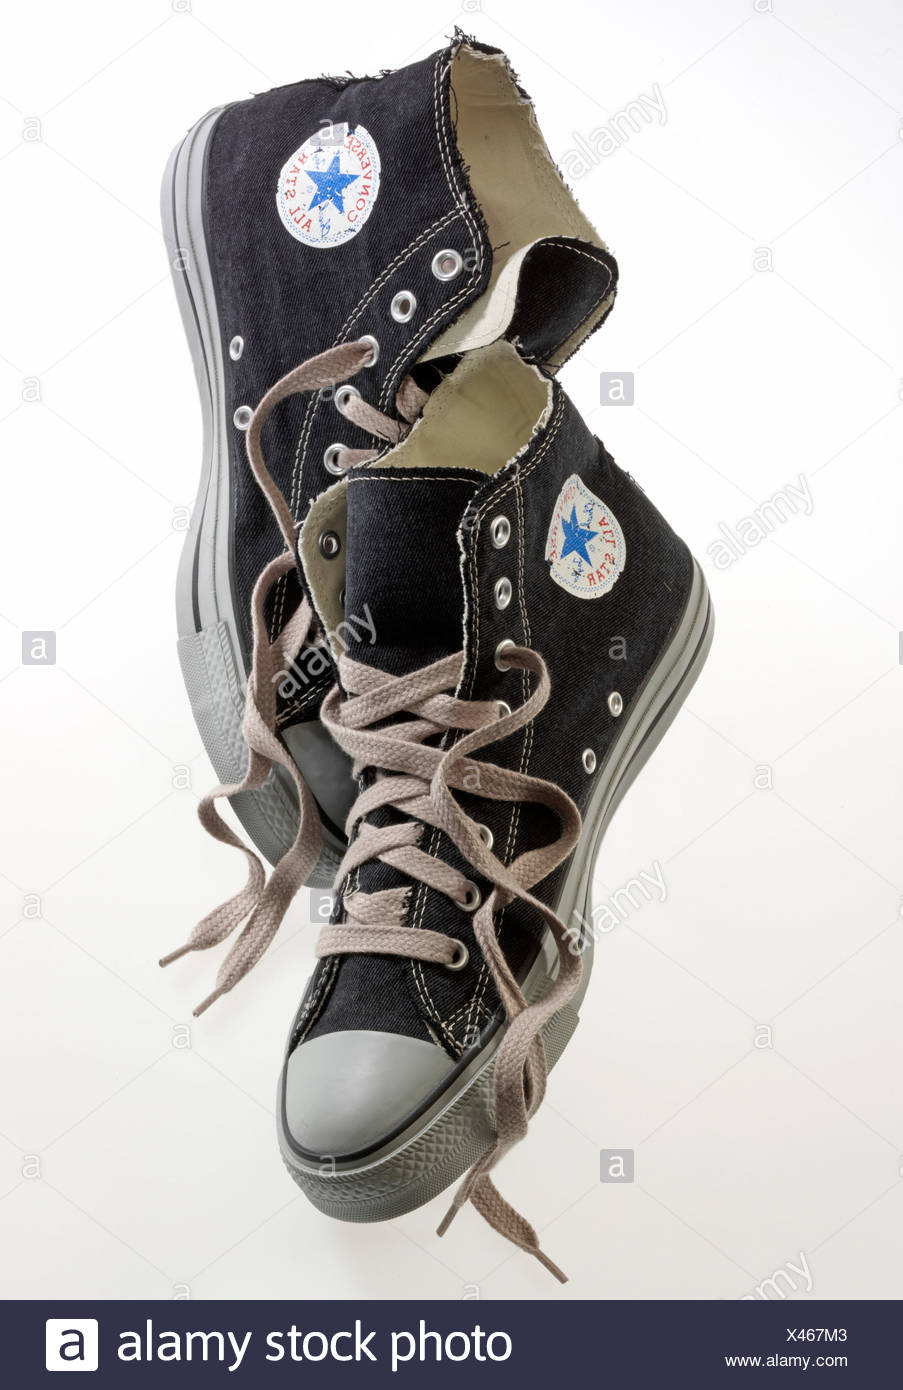 6178d0906eb5 Converse All-Star shoes Stock Photo  277962275 - Alamy